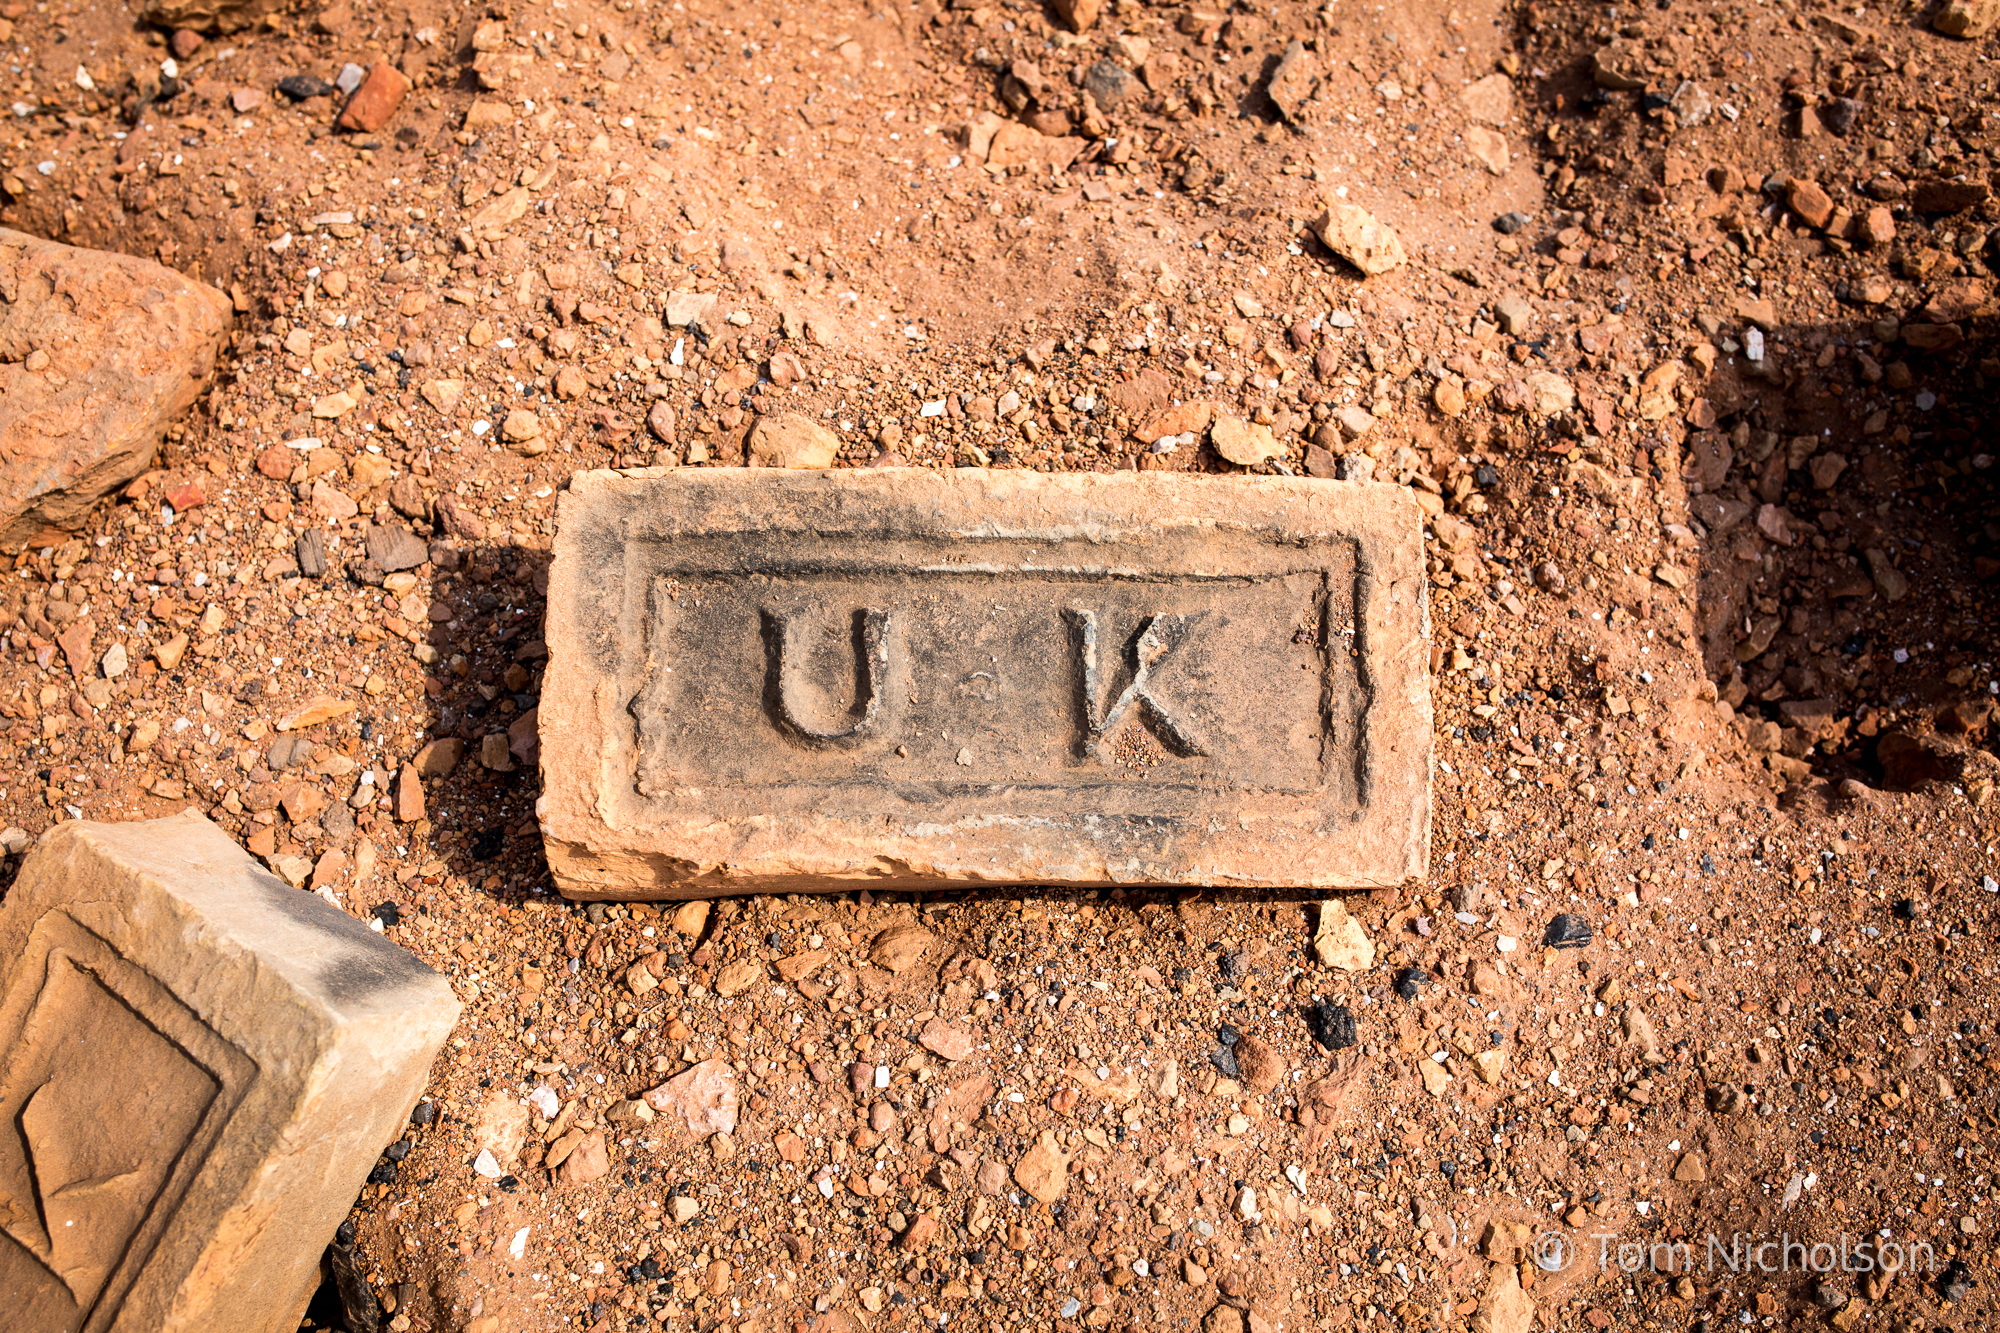 A brick in the UK brickworks factory in Bungamati, Kathmandu, Nepal on 15 March 2016. Around 400 labourers, including children, work in very dusty and hot conditions.